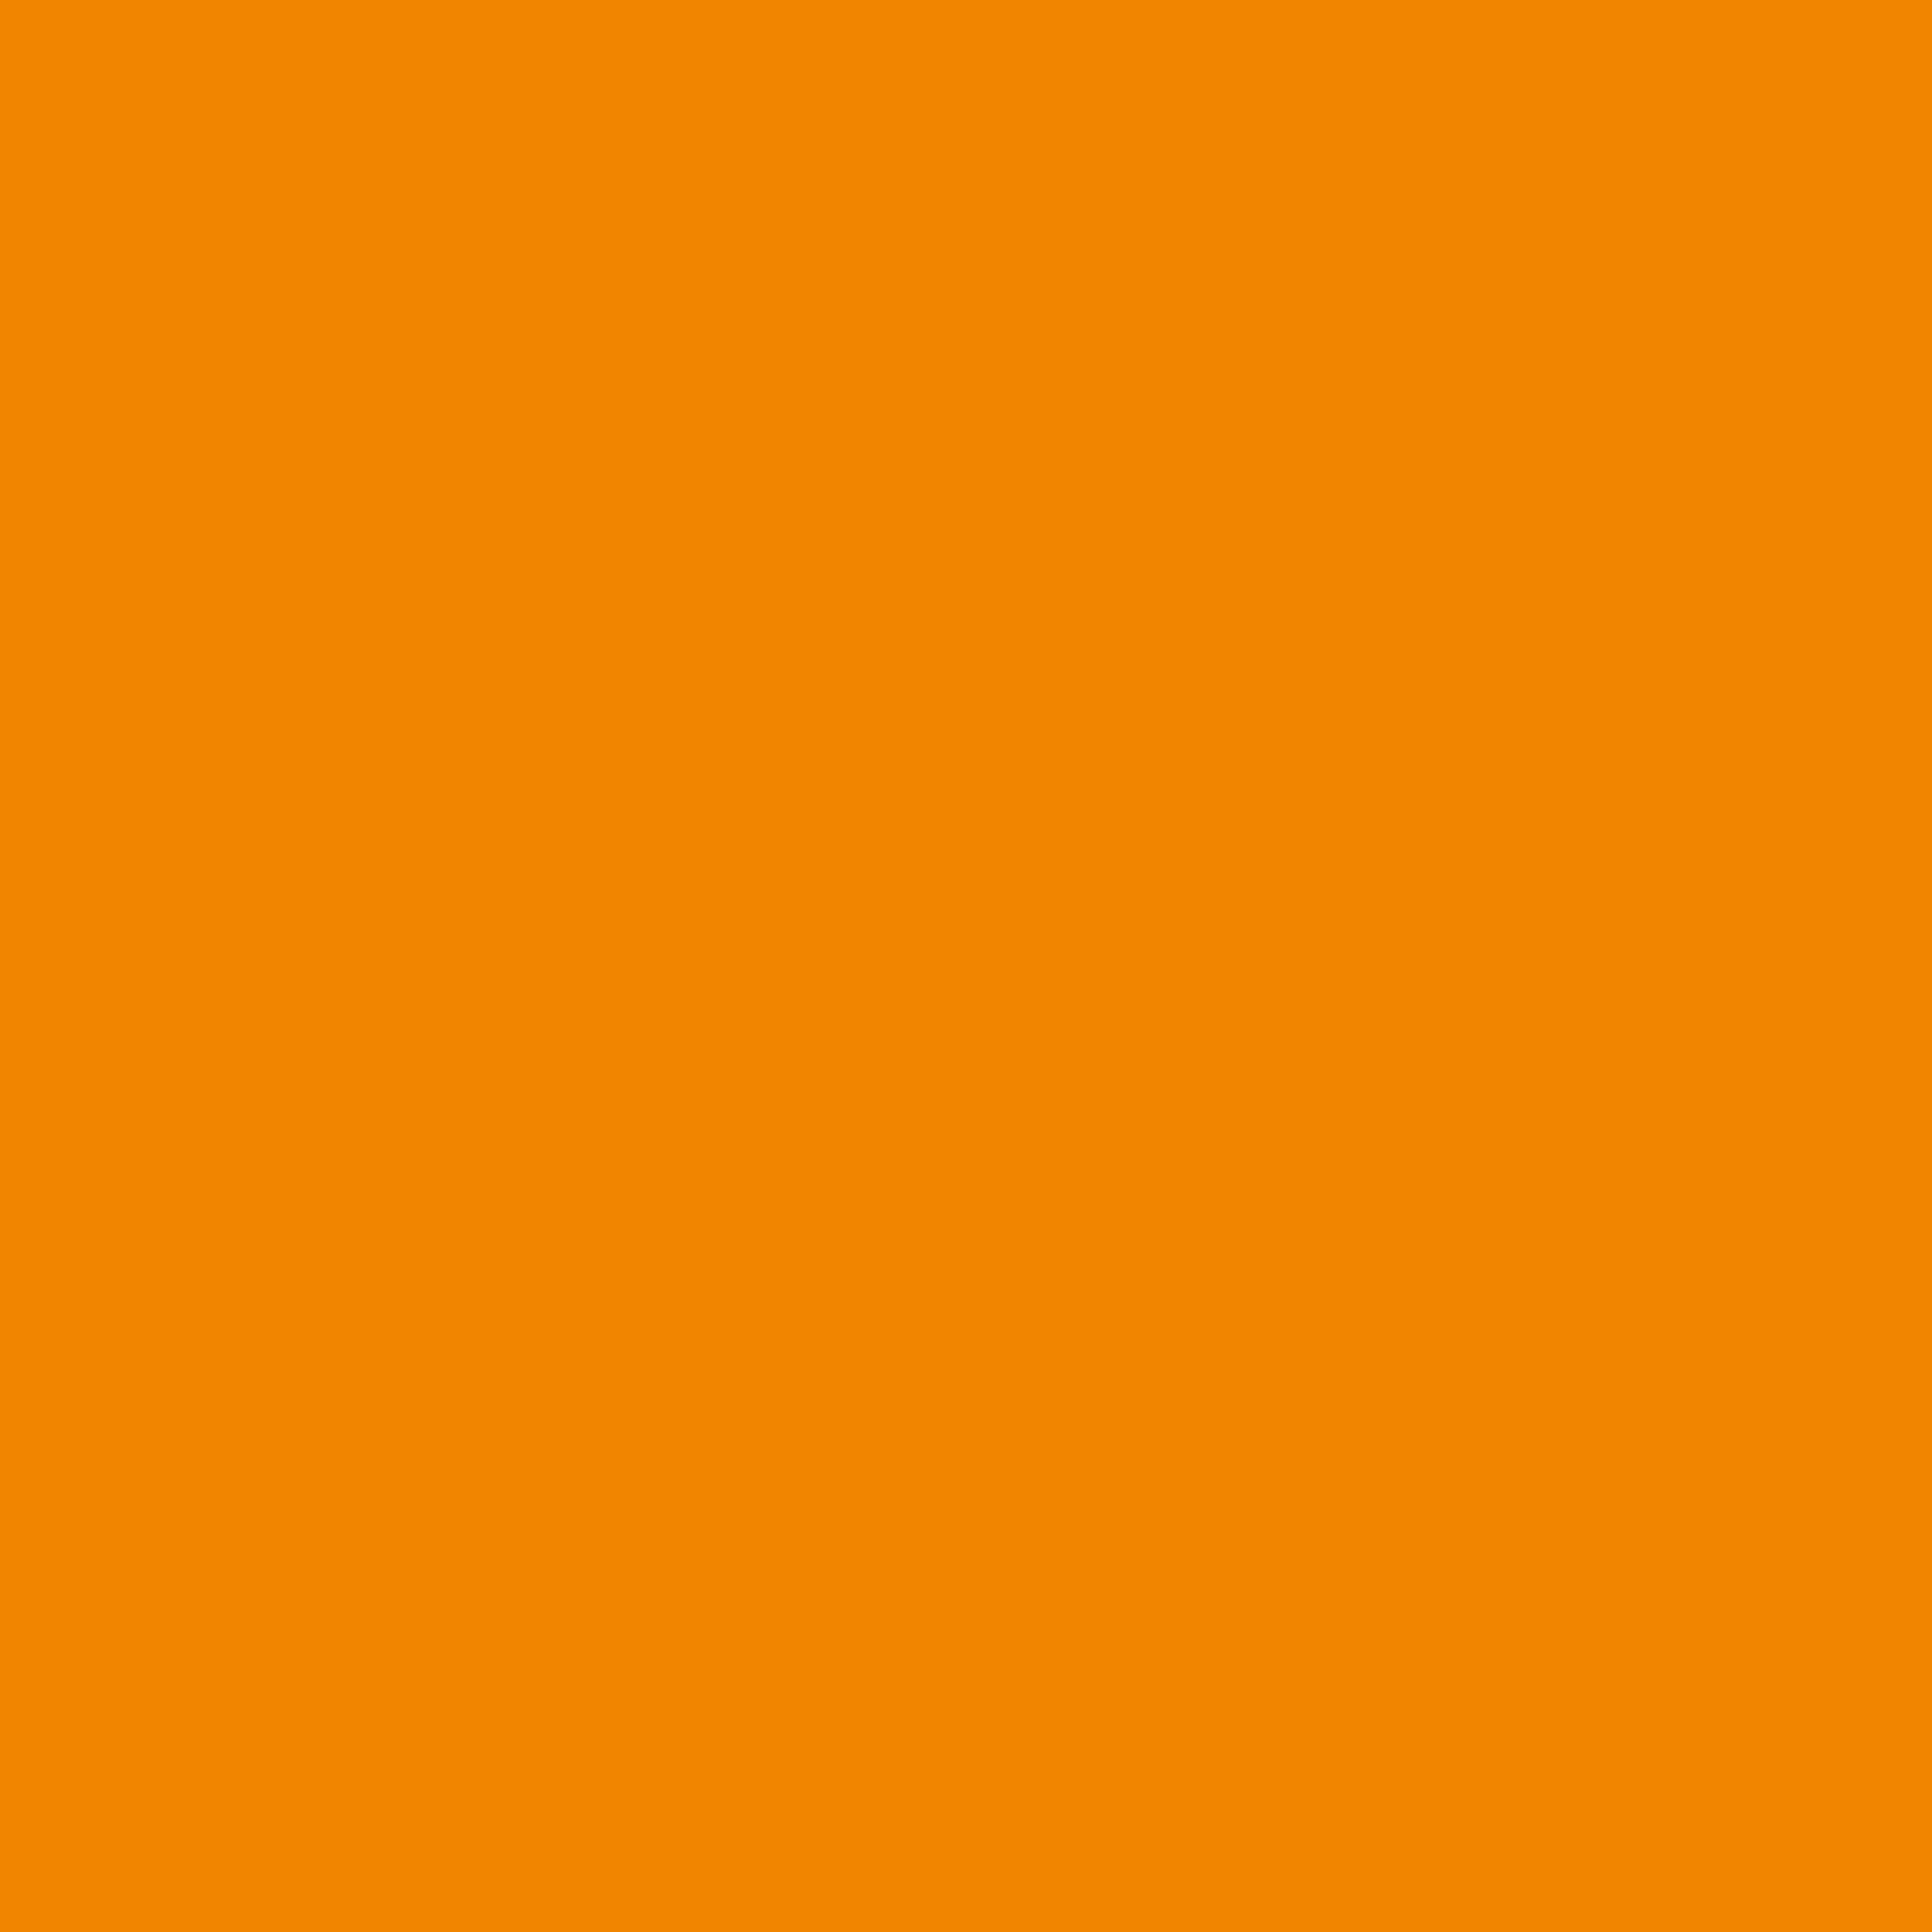 2048x2048 Tangerine Solid Color Background